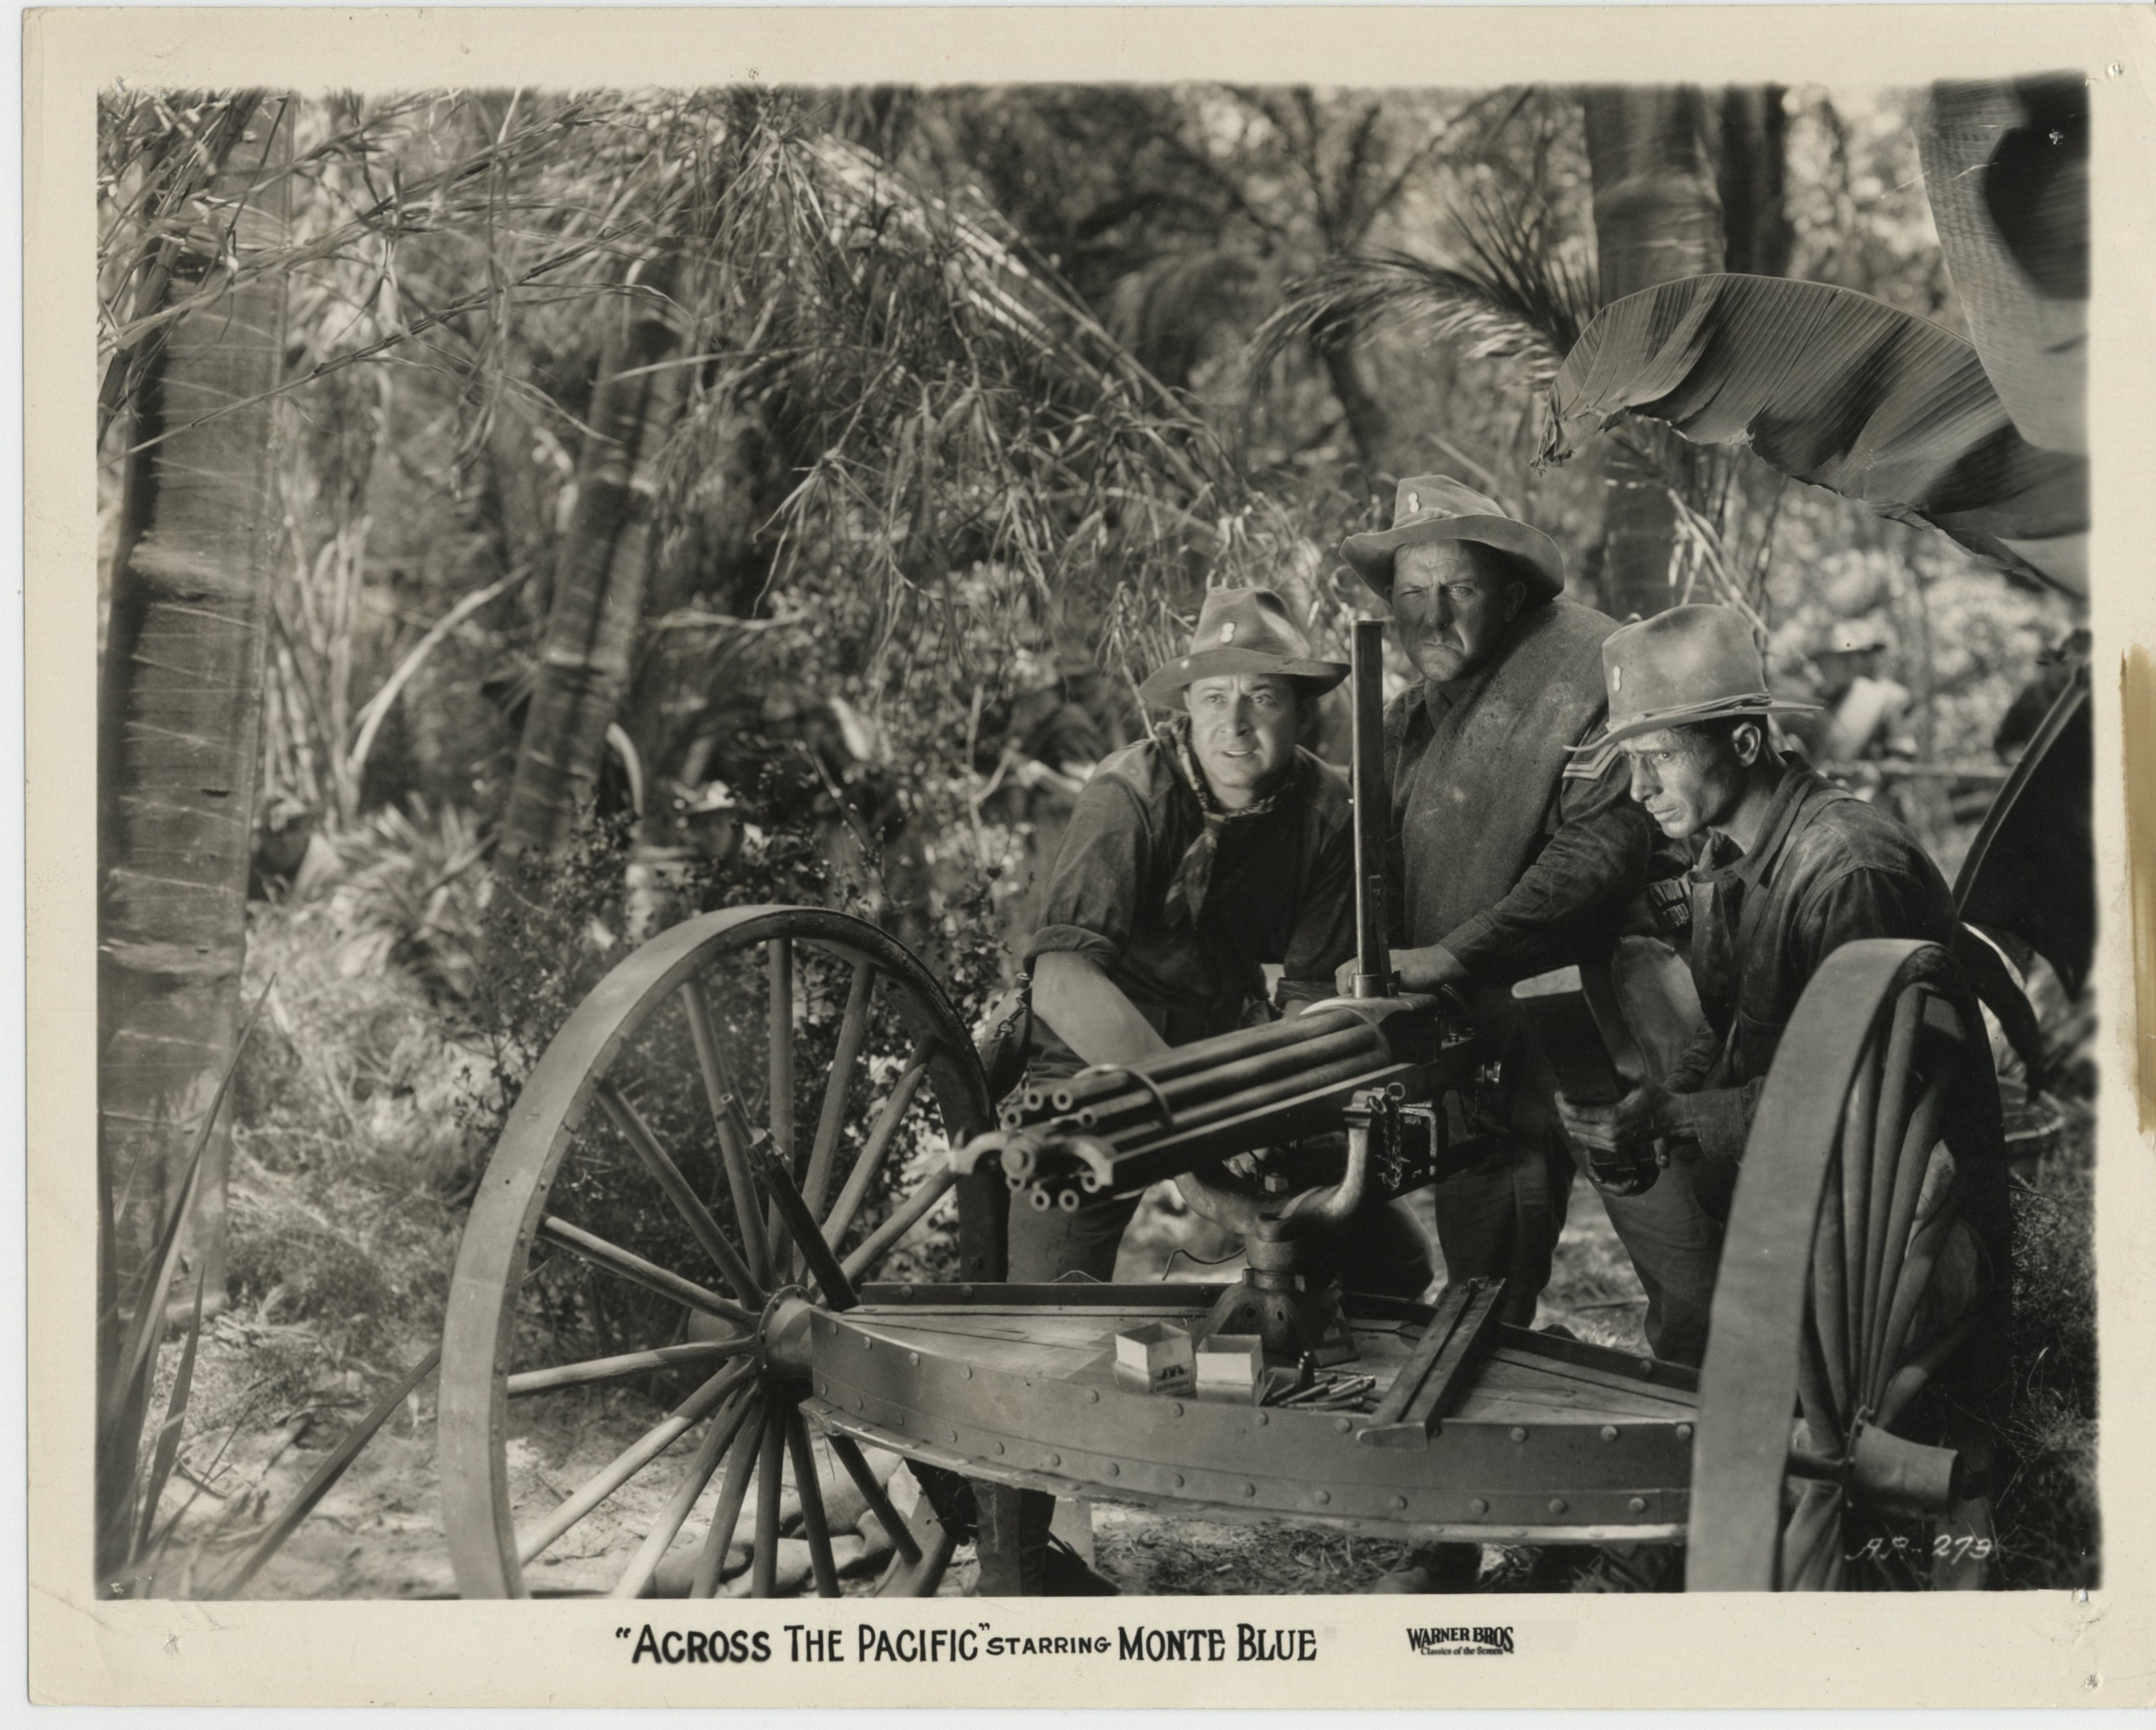 Monte Blue in Across the Pacific (1926)